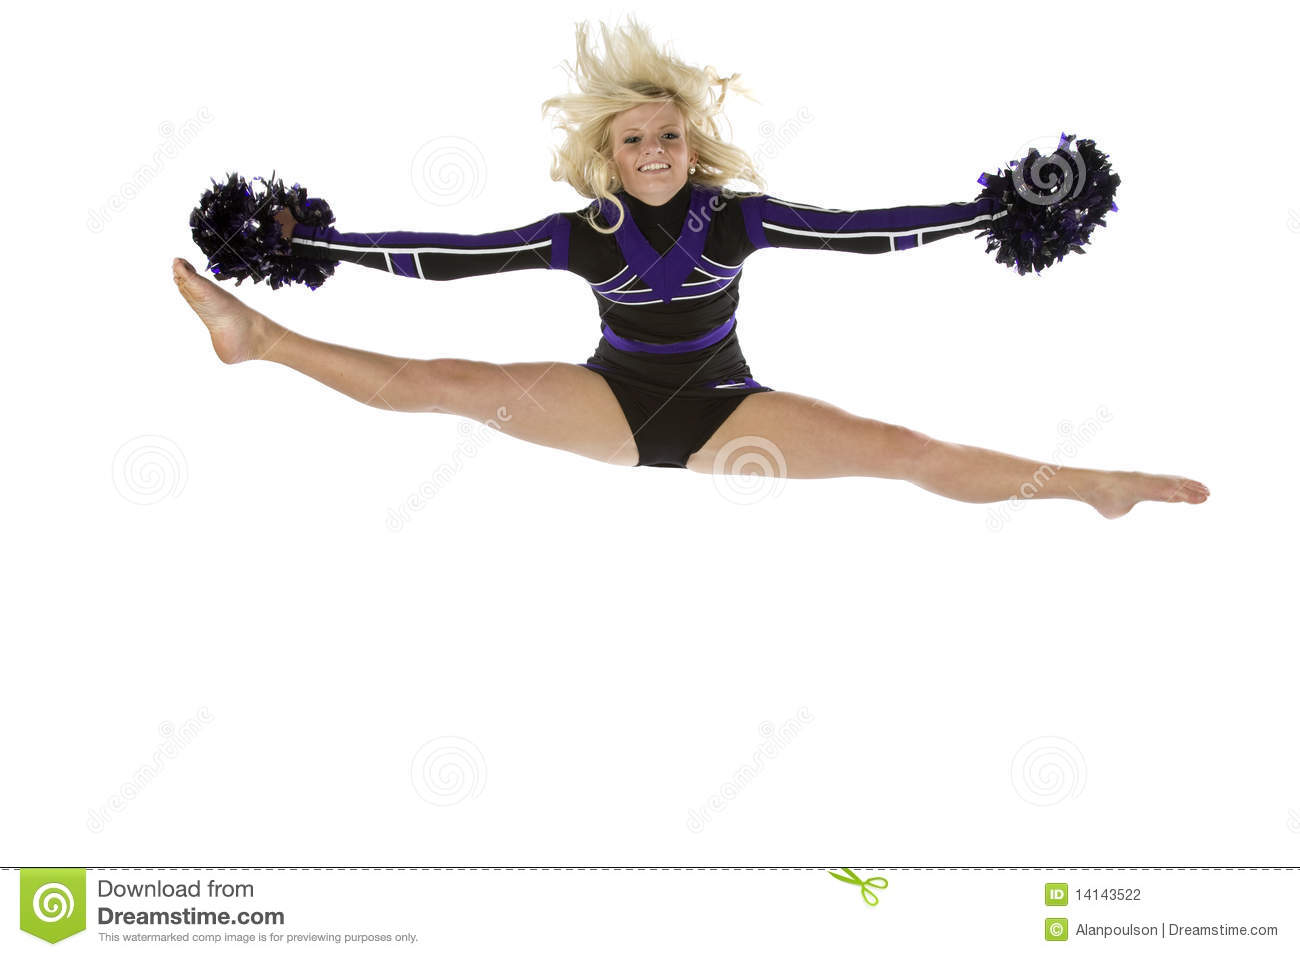 Reserve, neither Sexy cheerleader splits Such